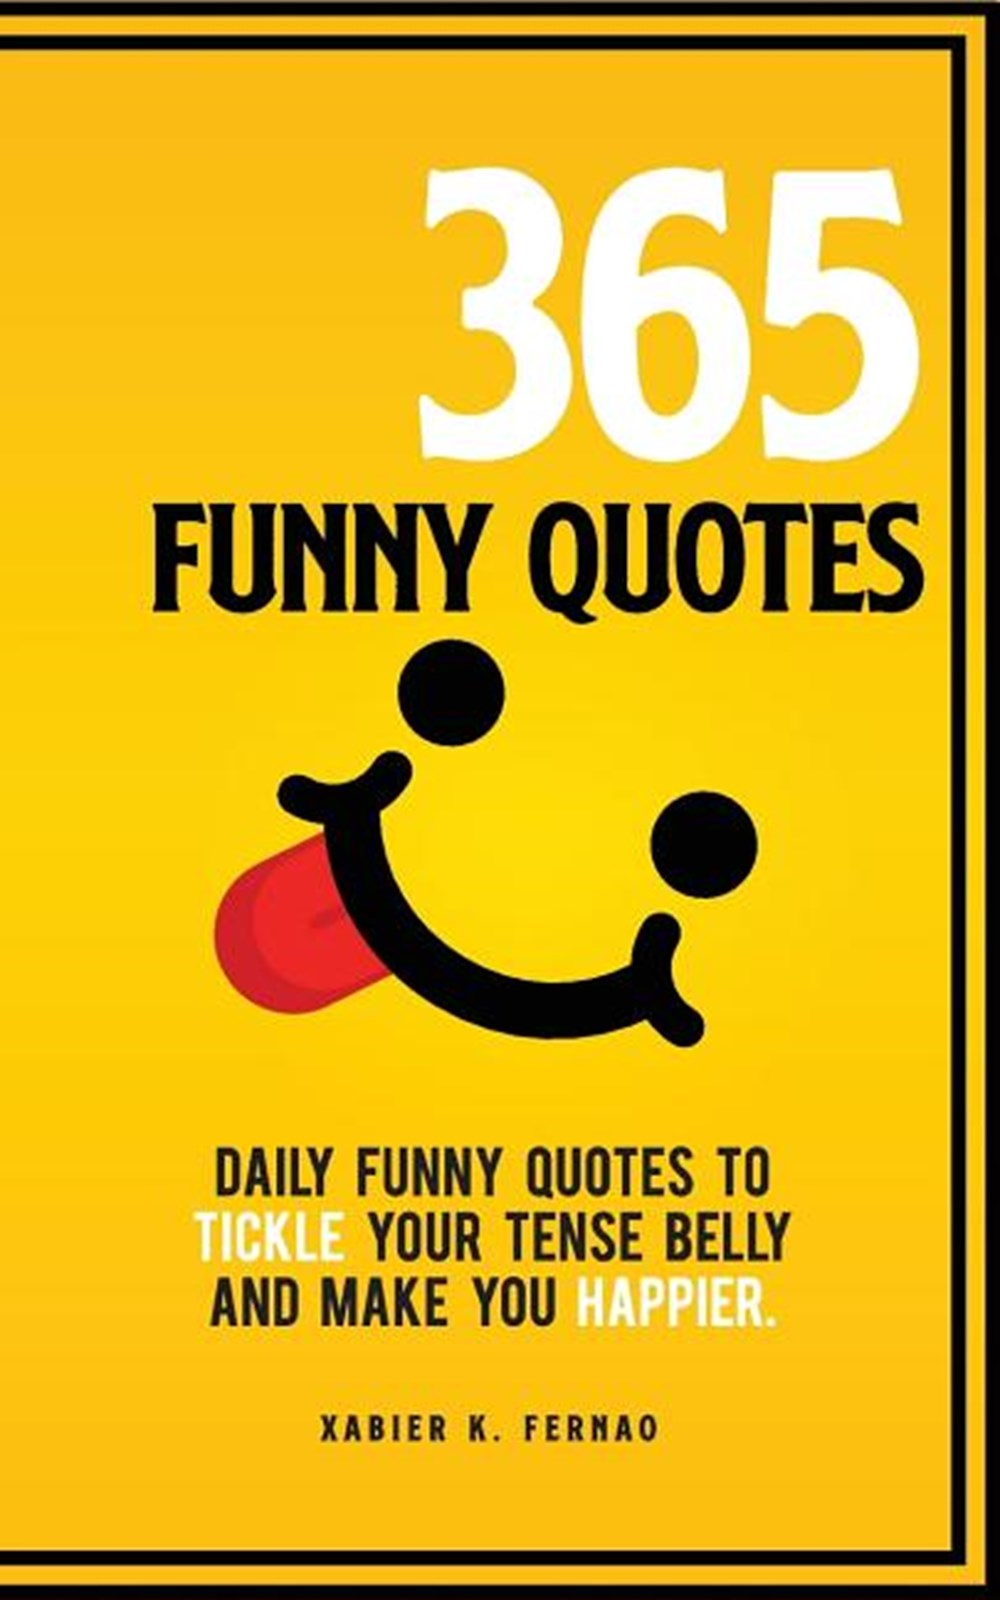 365 Funny Quotes Daily Funny Quotes to Tickle Your Tense Belly and Make You Happier